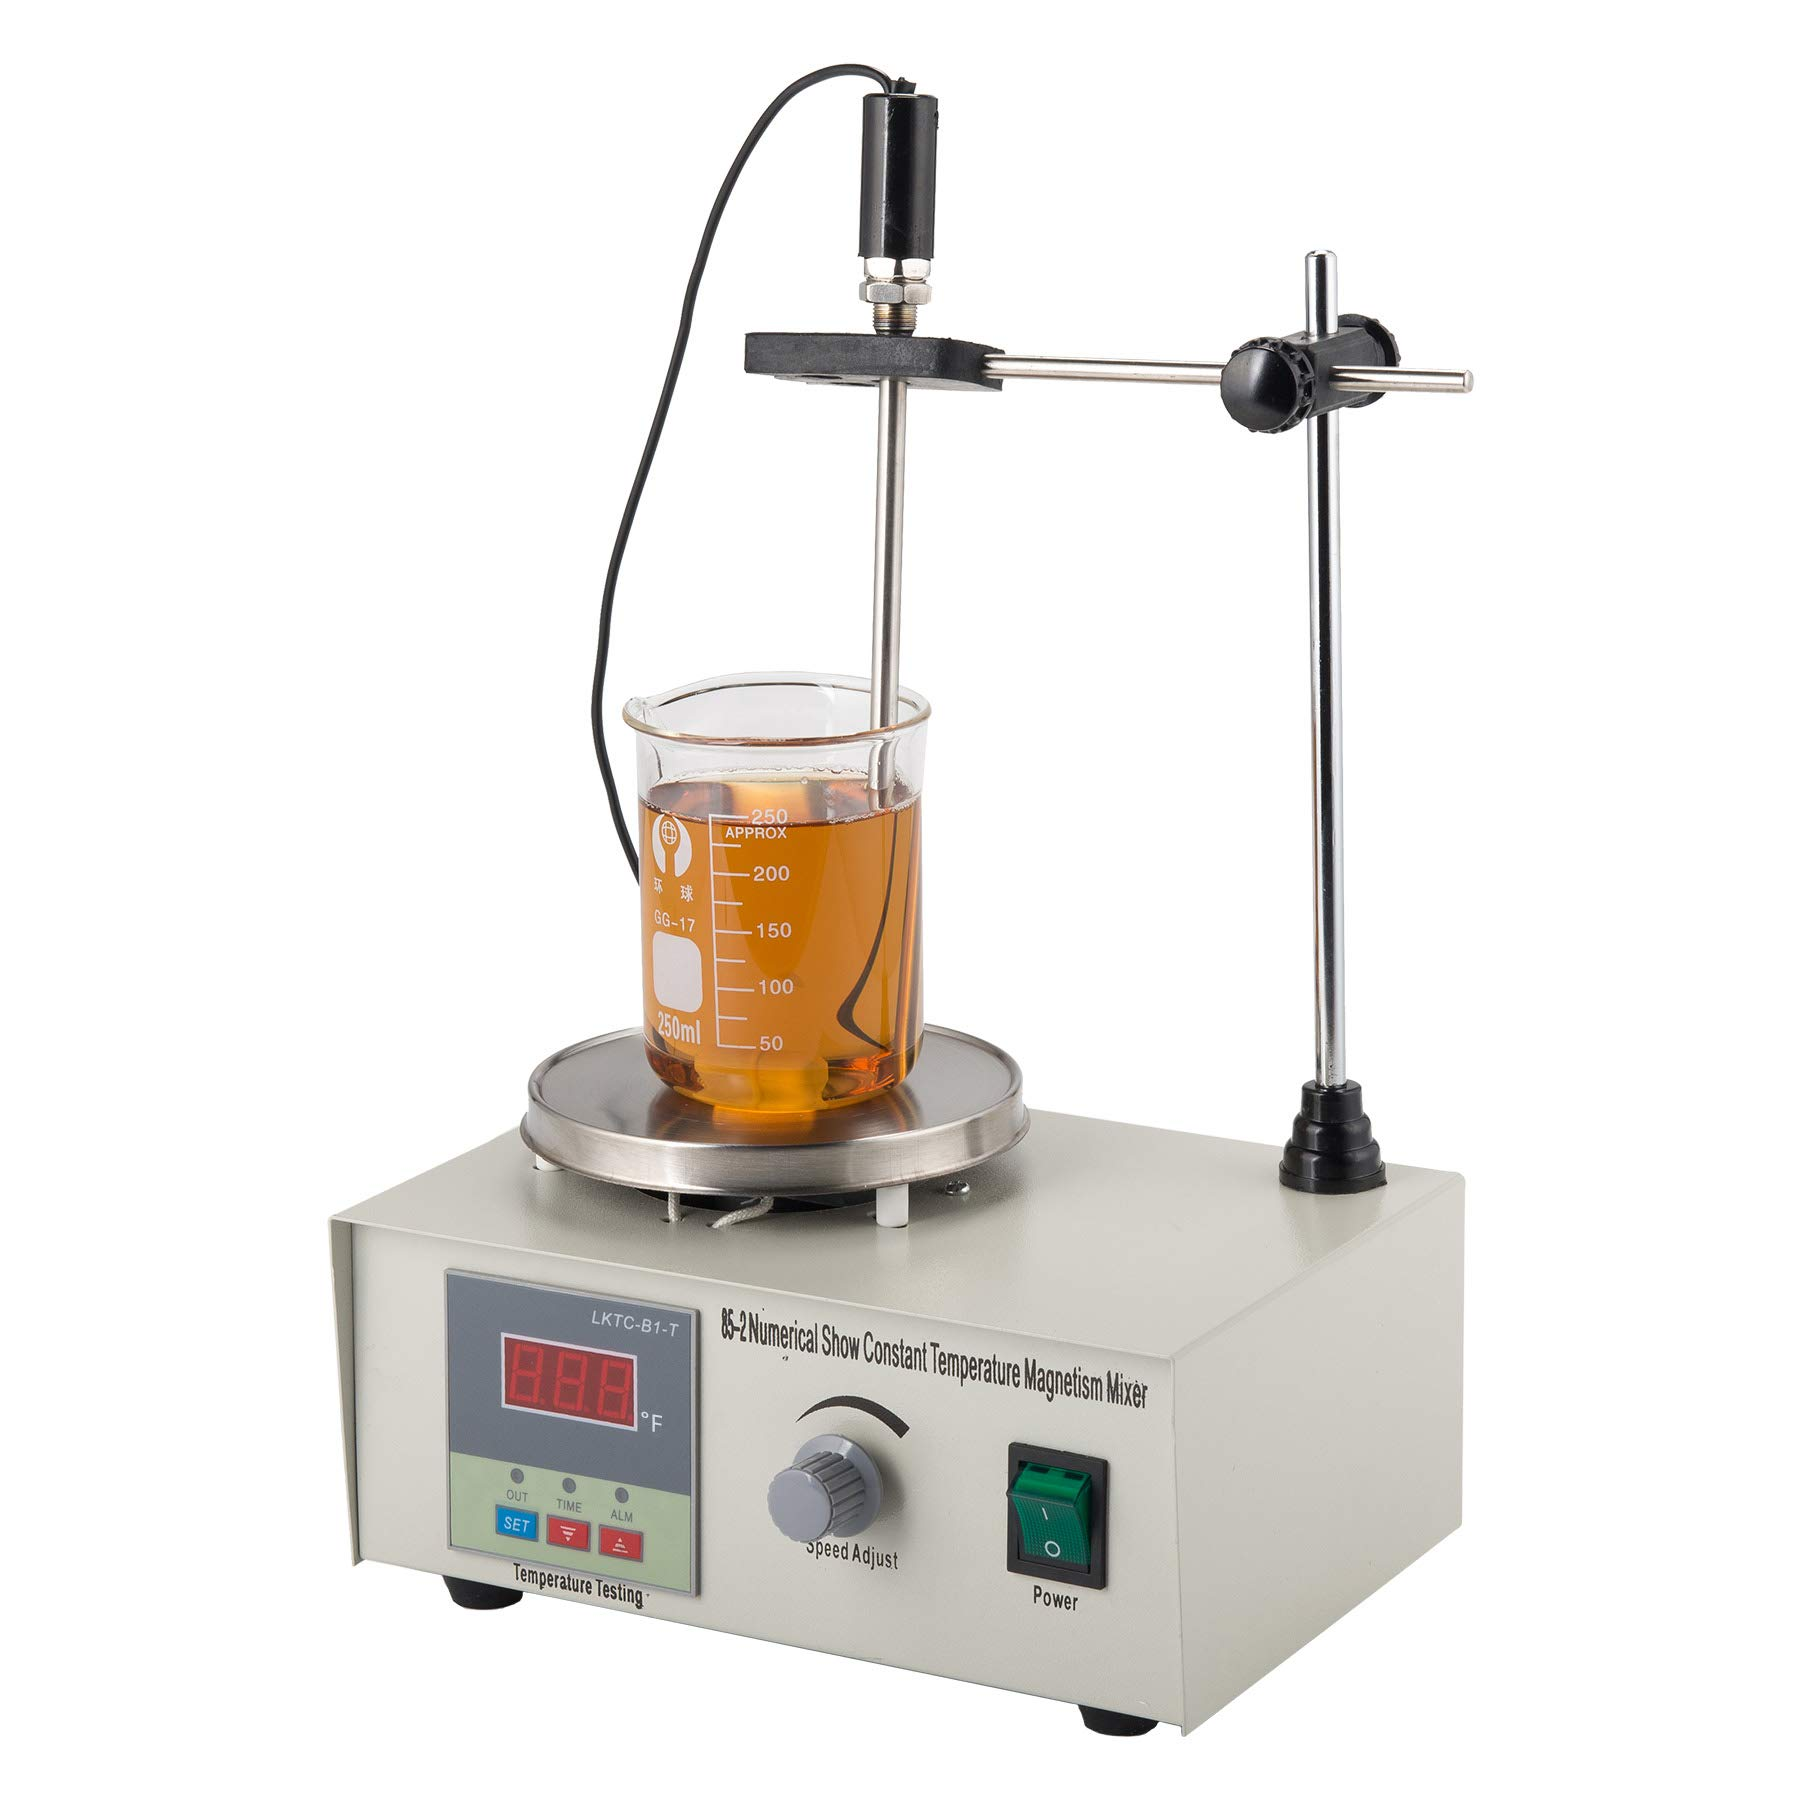 CO-Z Magnetic Stirrer Mixer Lab Mixer Magnetic Spinner Hotplate with Heating Plate 85-2 Digital Magnetic Mixer, 300W, 1000ml